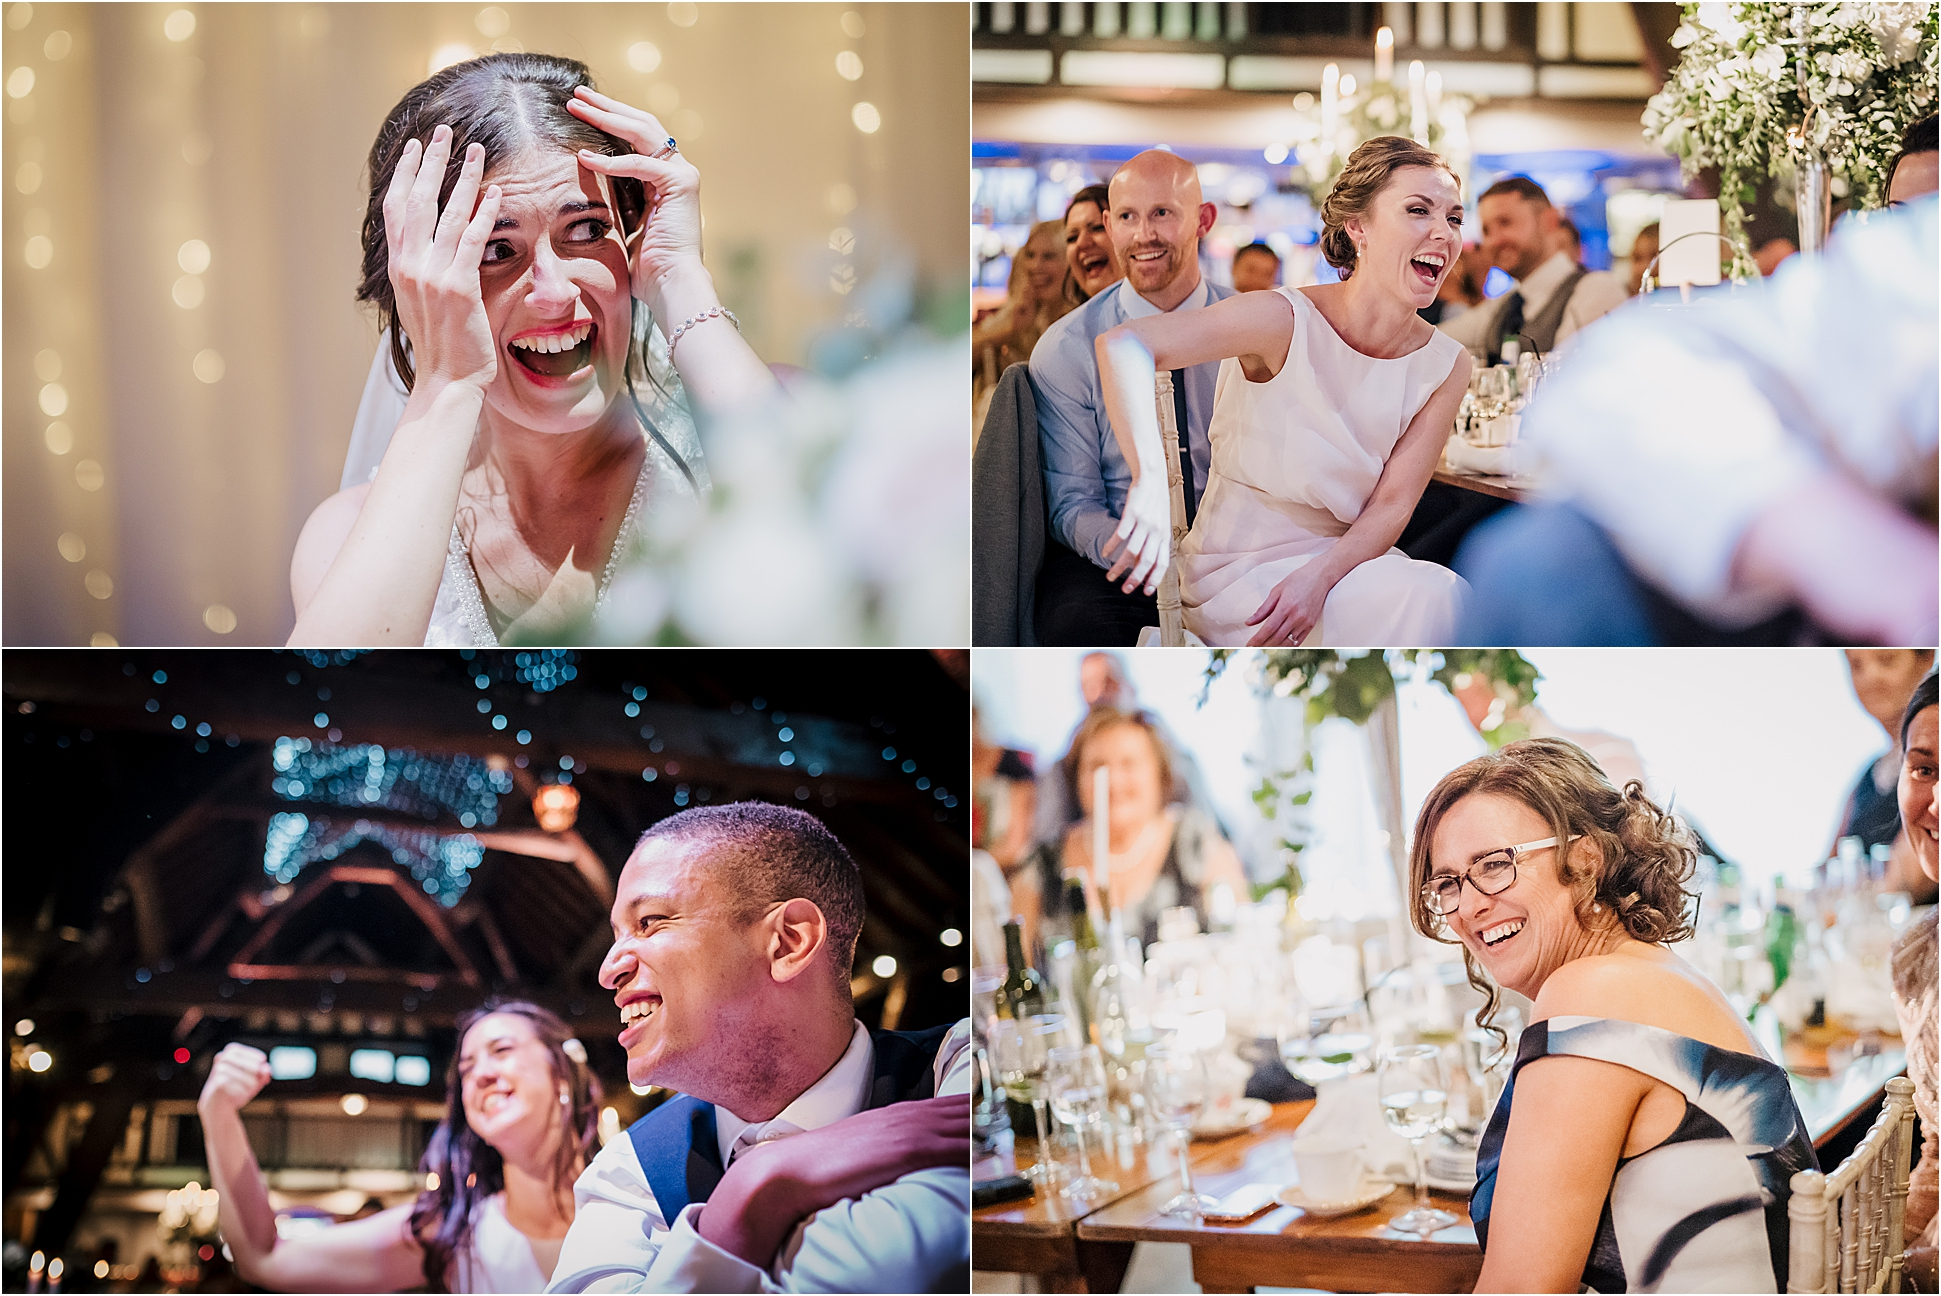 Leanne and Daniel – Rivington Hall Barn